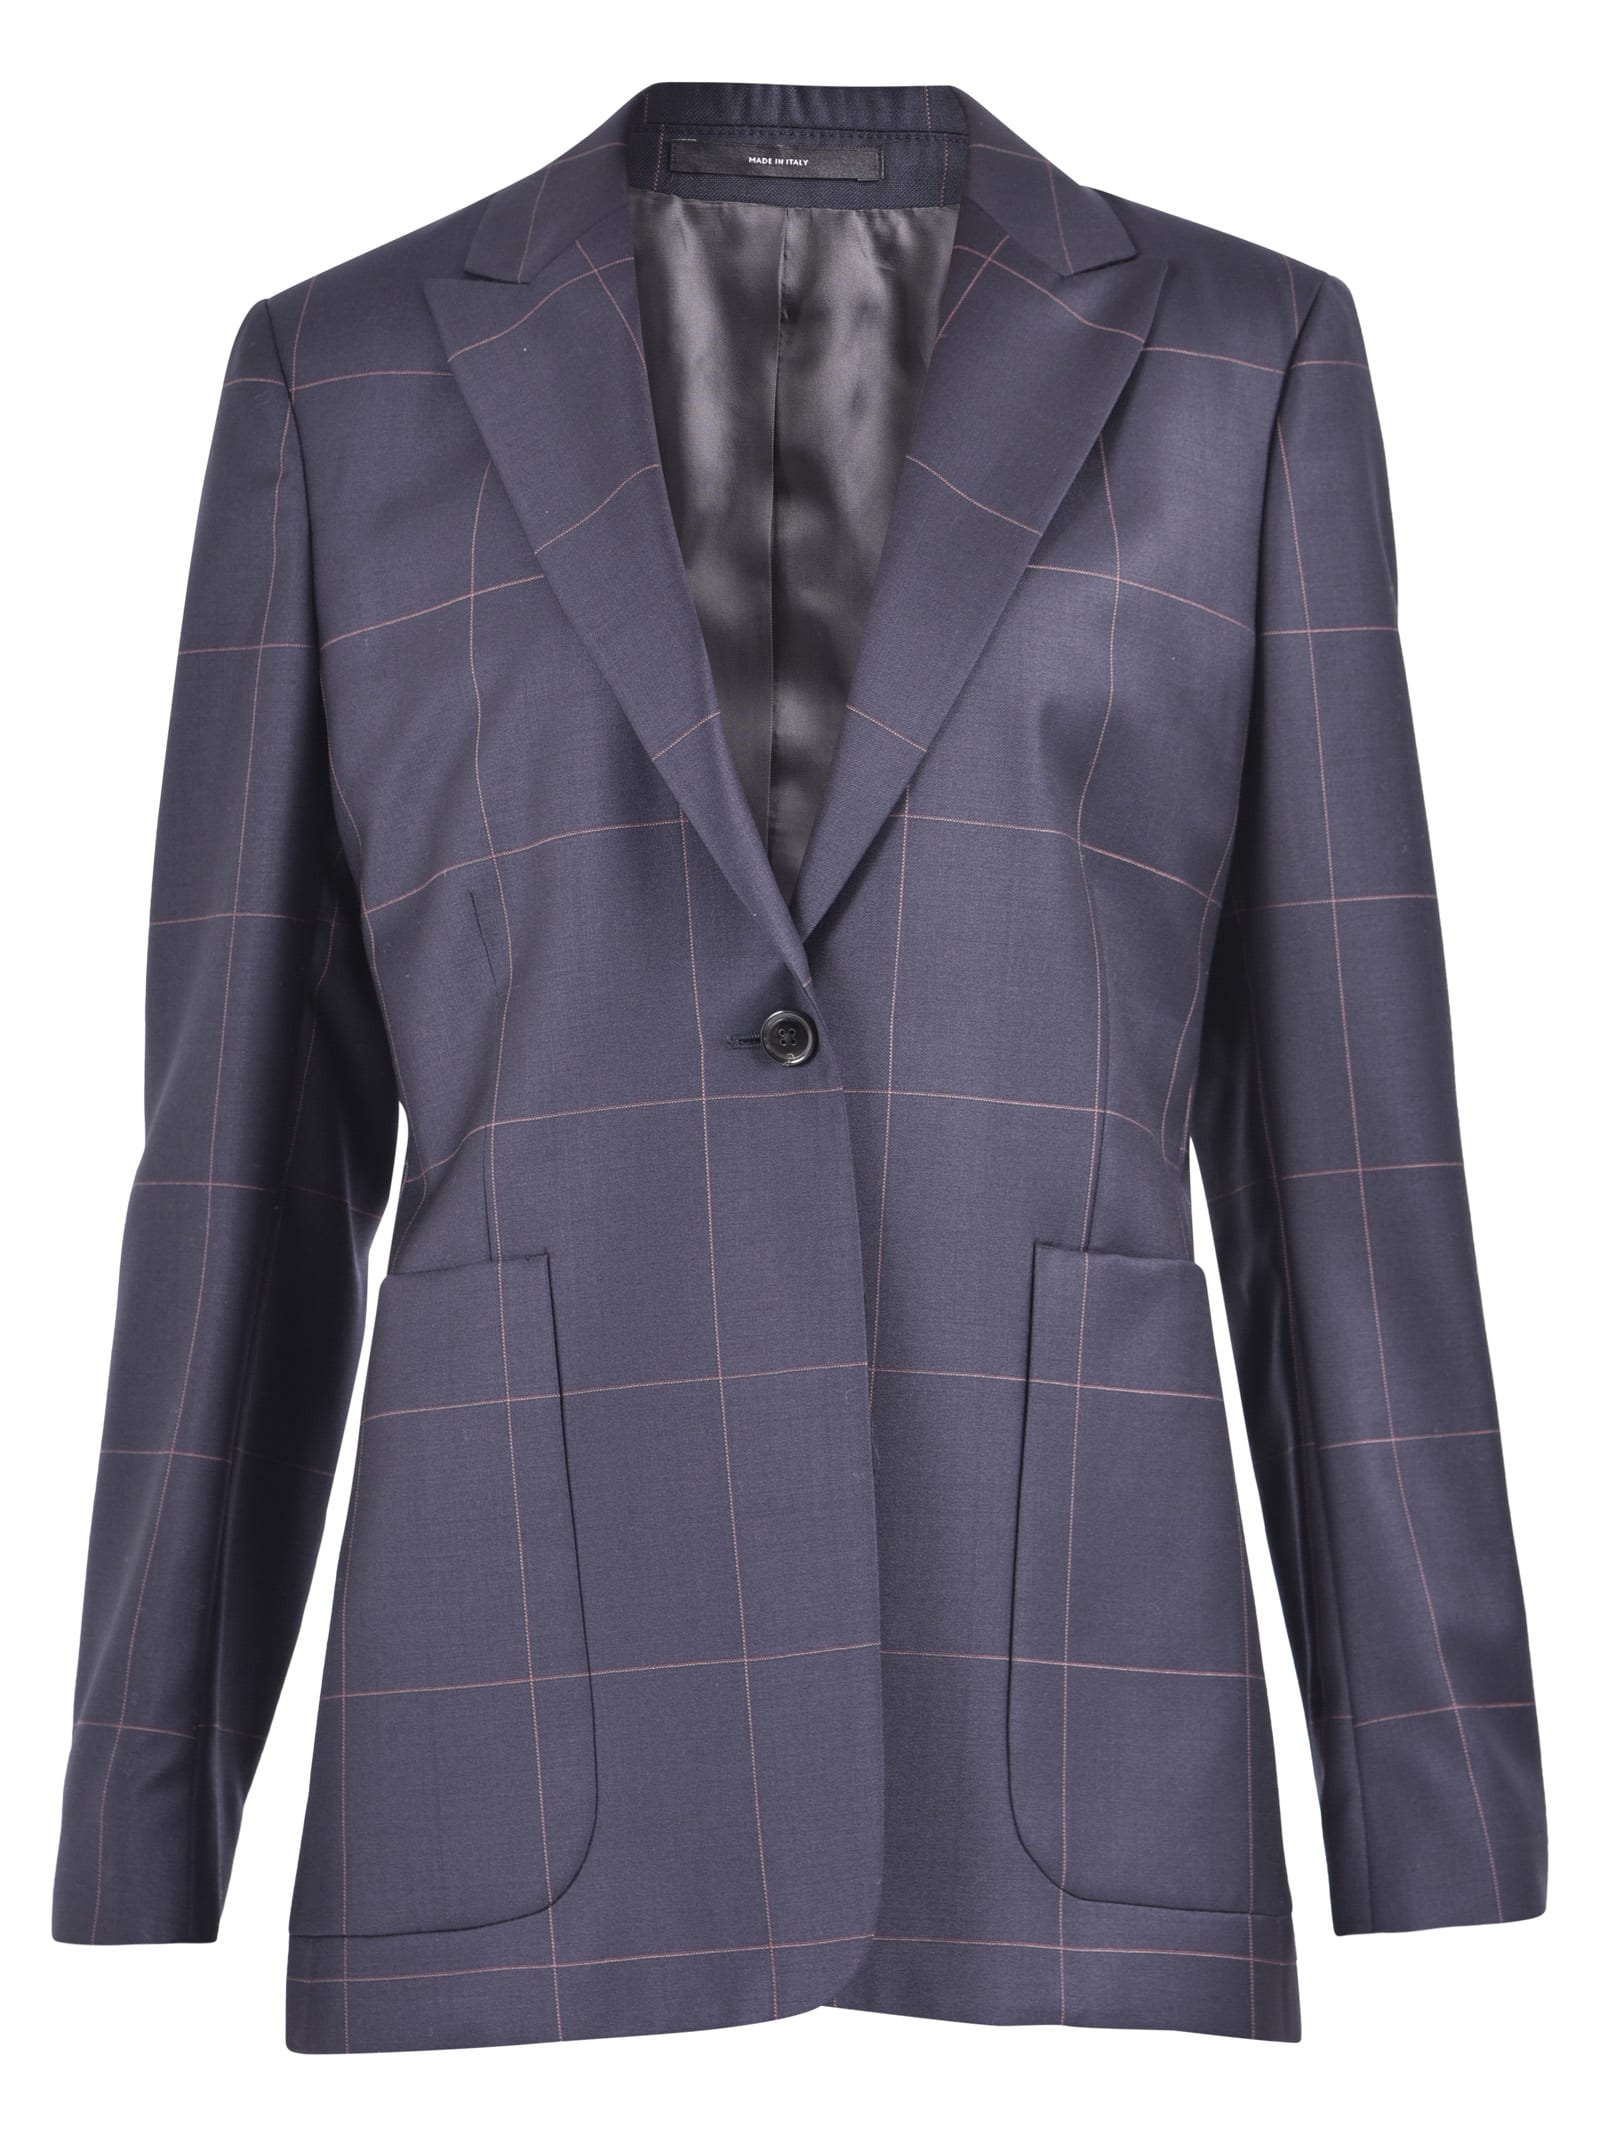 Paul Smith Single-breasted Jacket